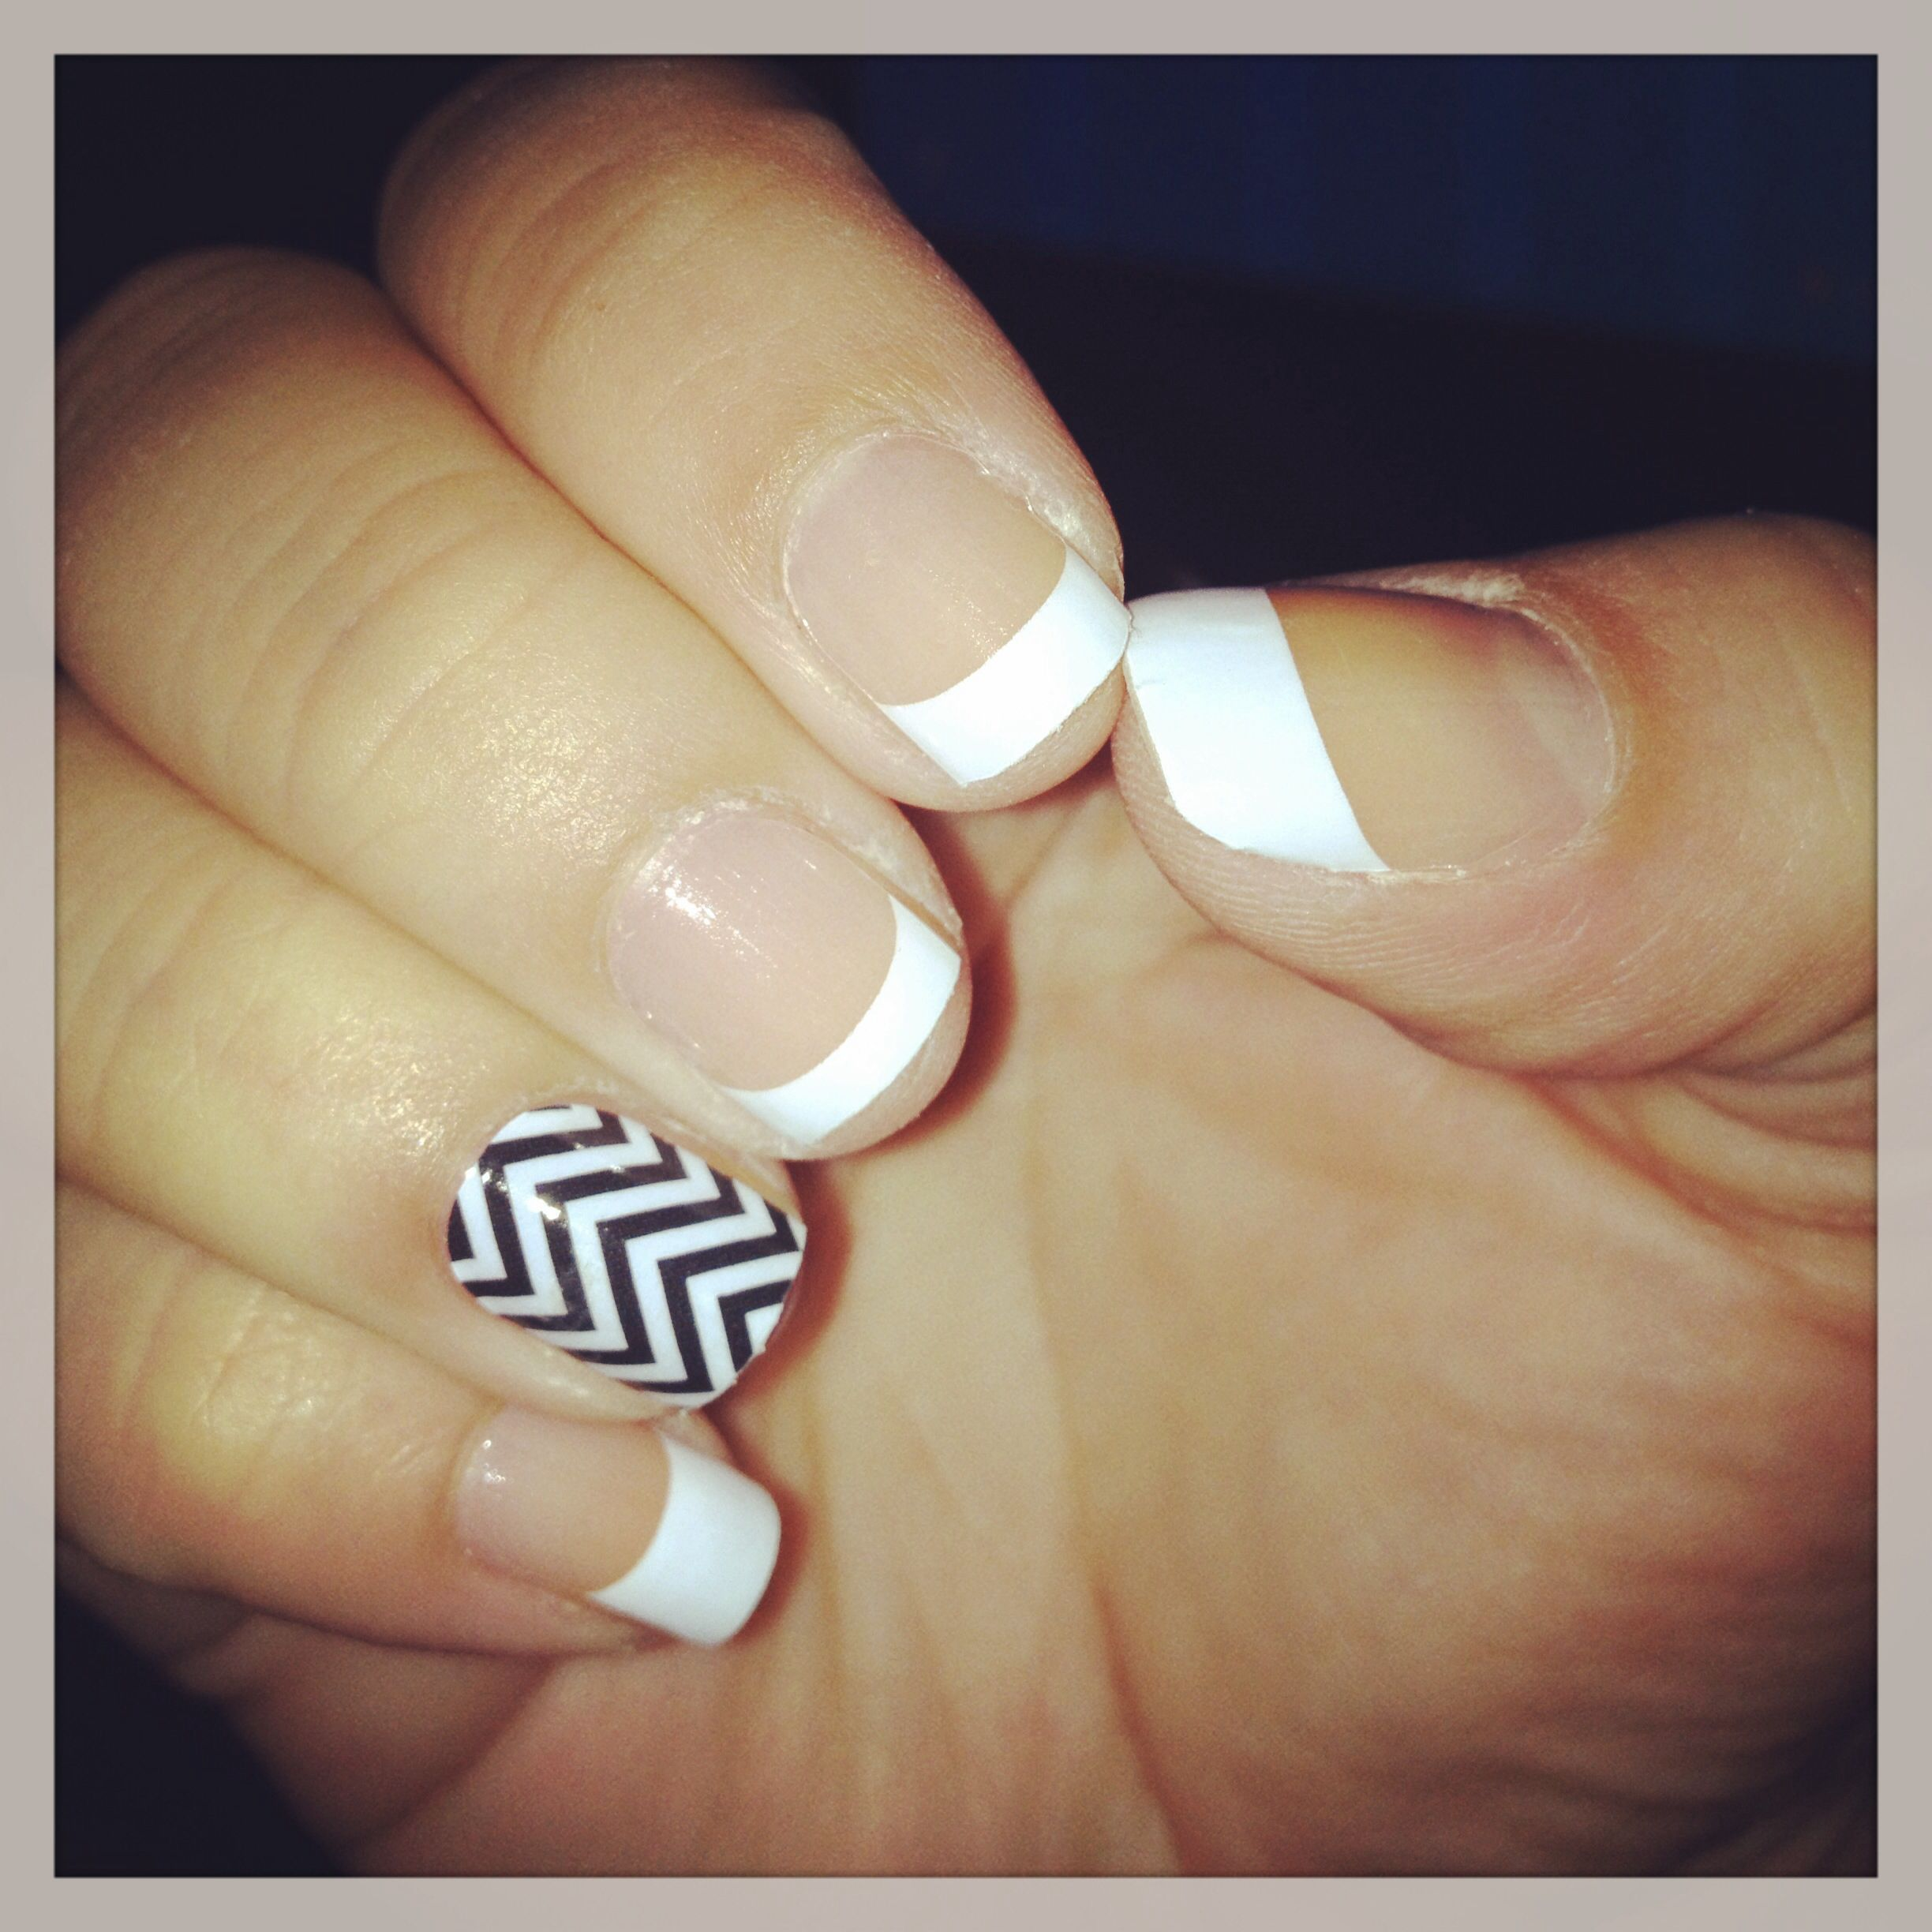 Find this Pin and more on Jamberry Nails by swanlilly.